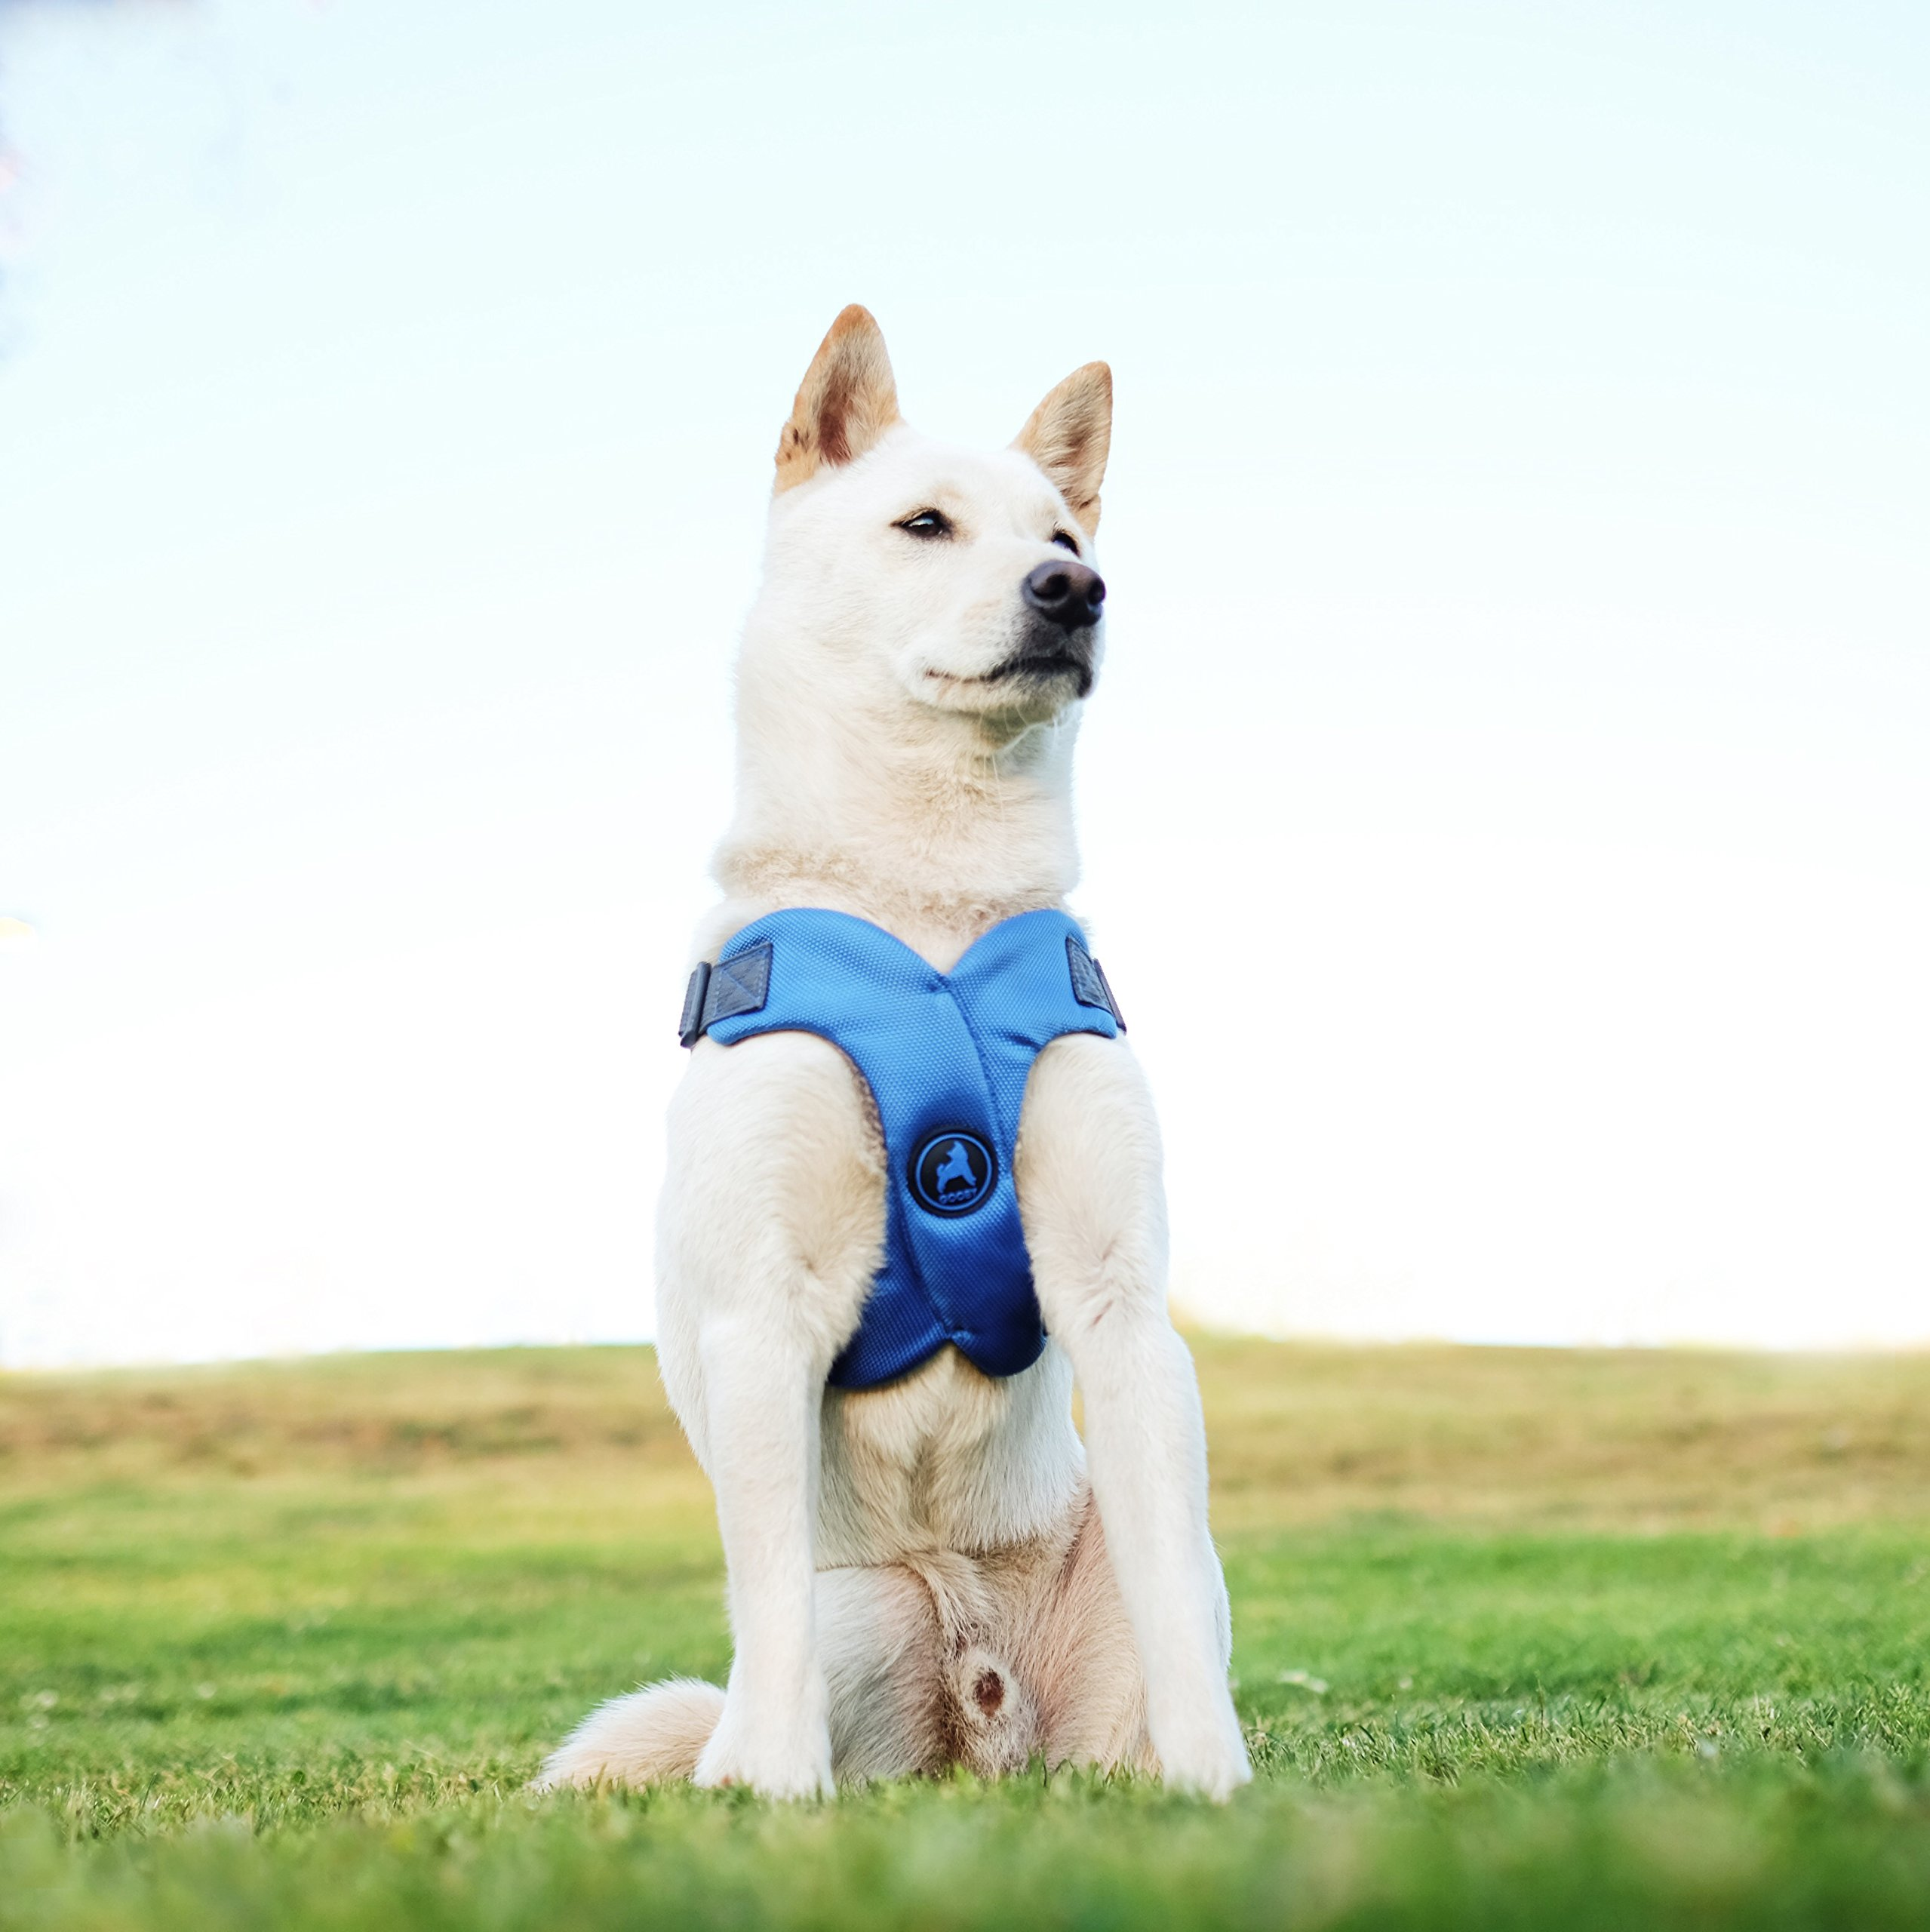 [Old Version] Gooby Escape Free Memory Foam Harness for Small Dogs, Pink, Large by Gooby (Image #6)